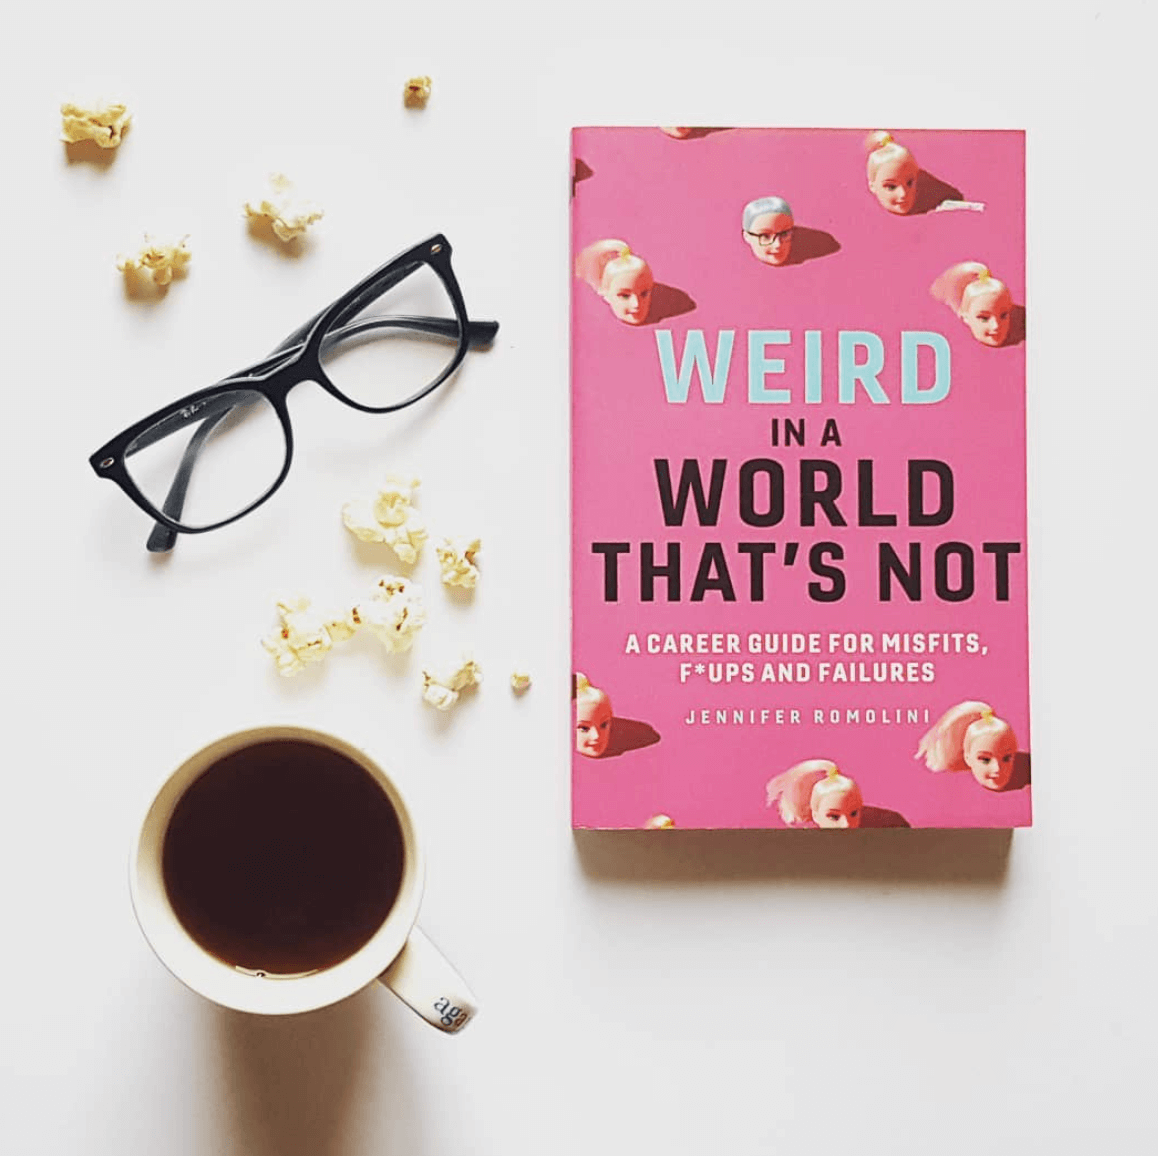 Weird in a World That's Not by Jennifer Romolini.